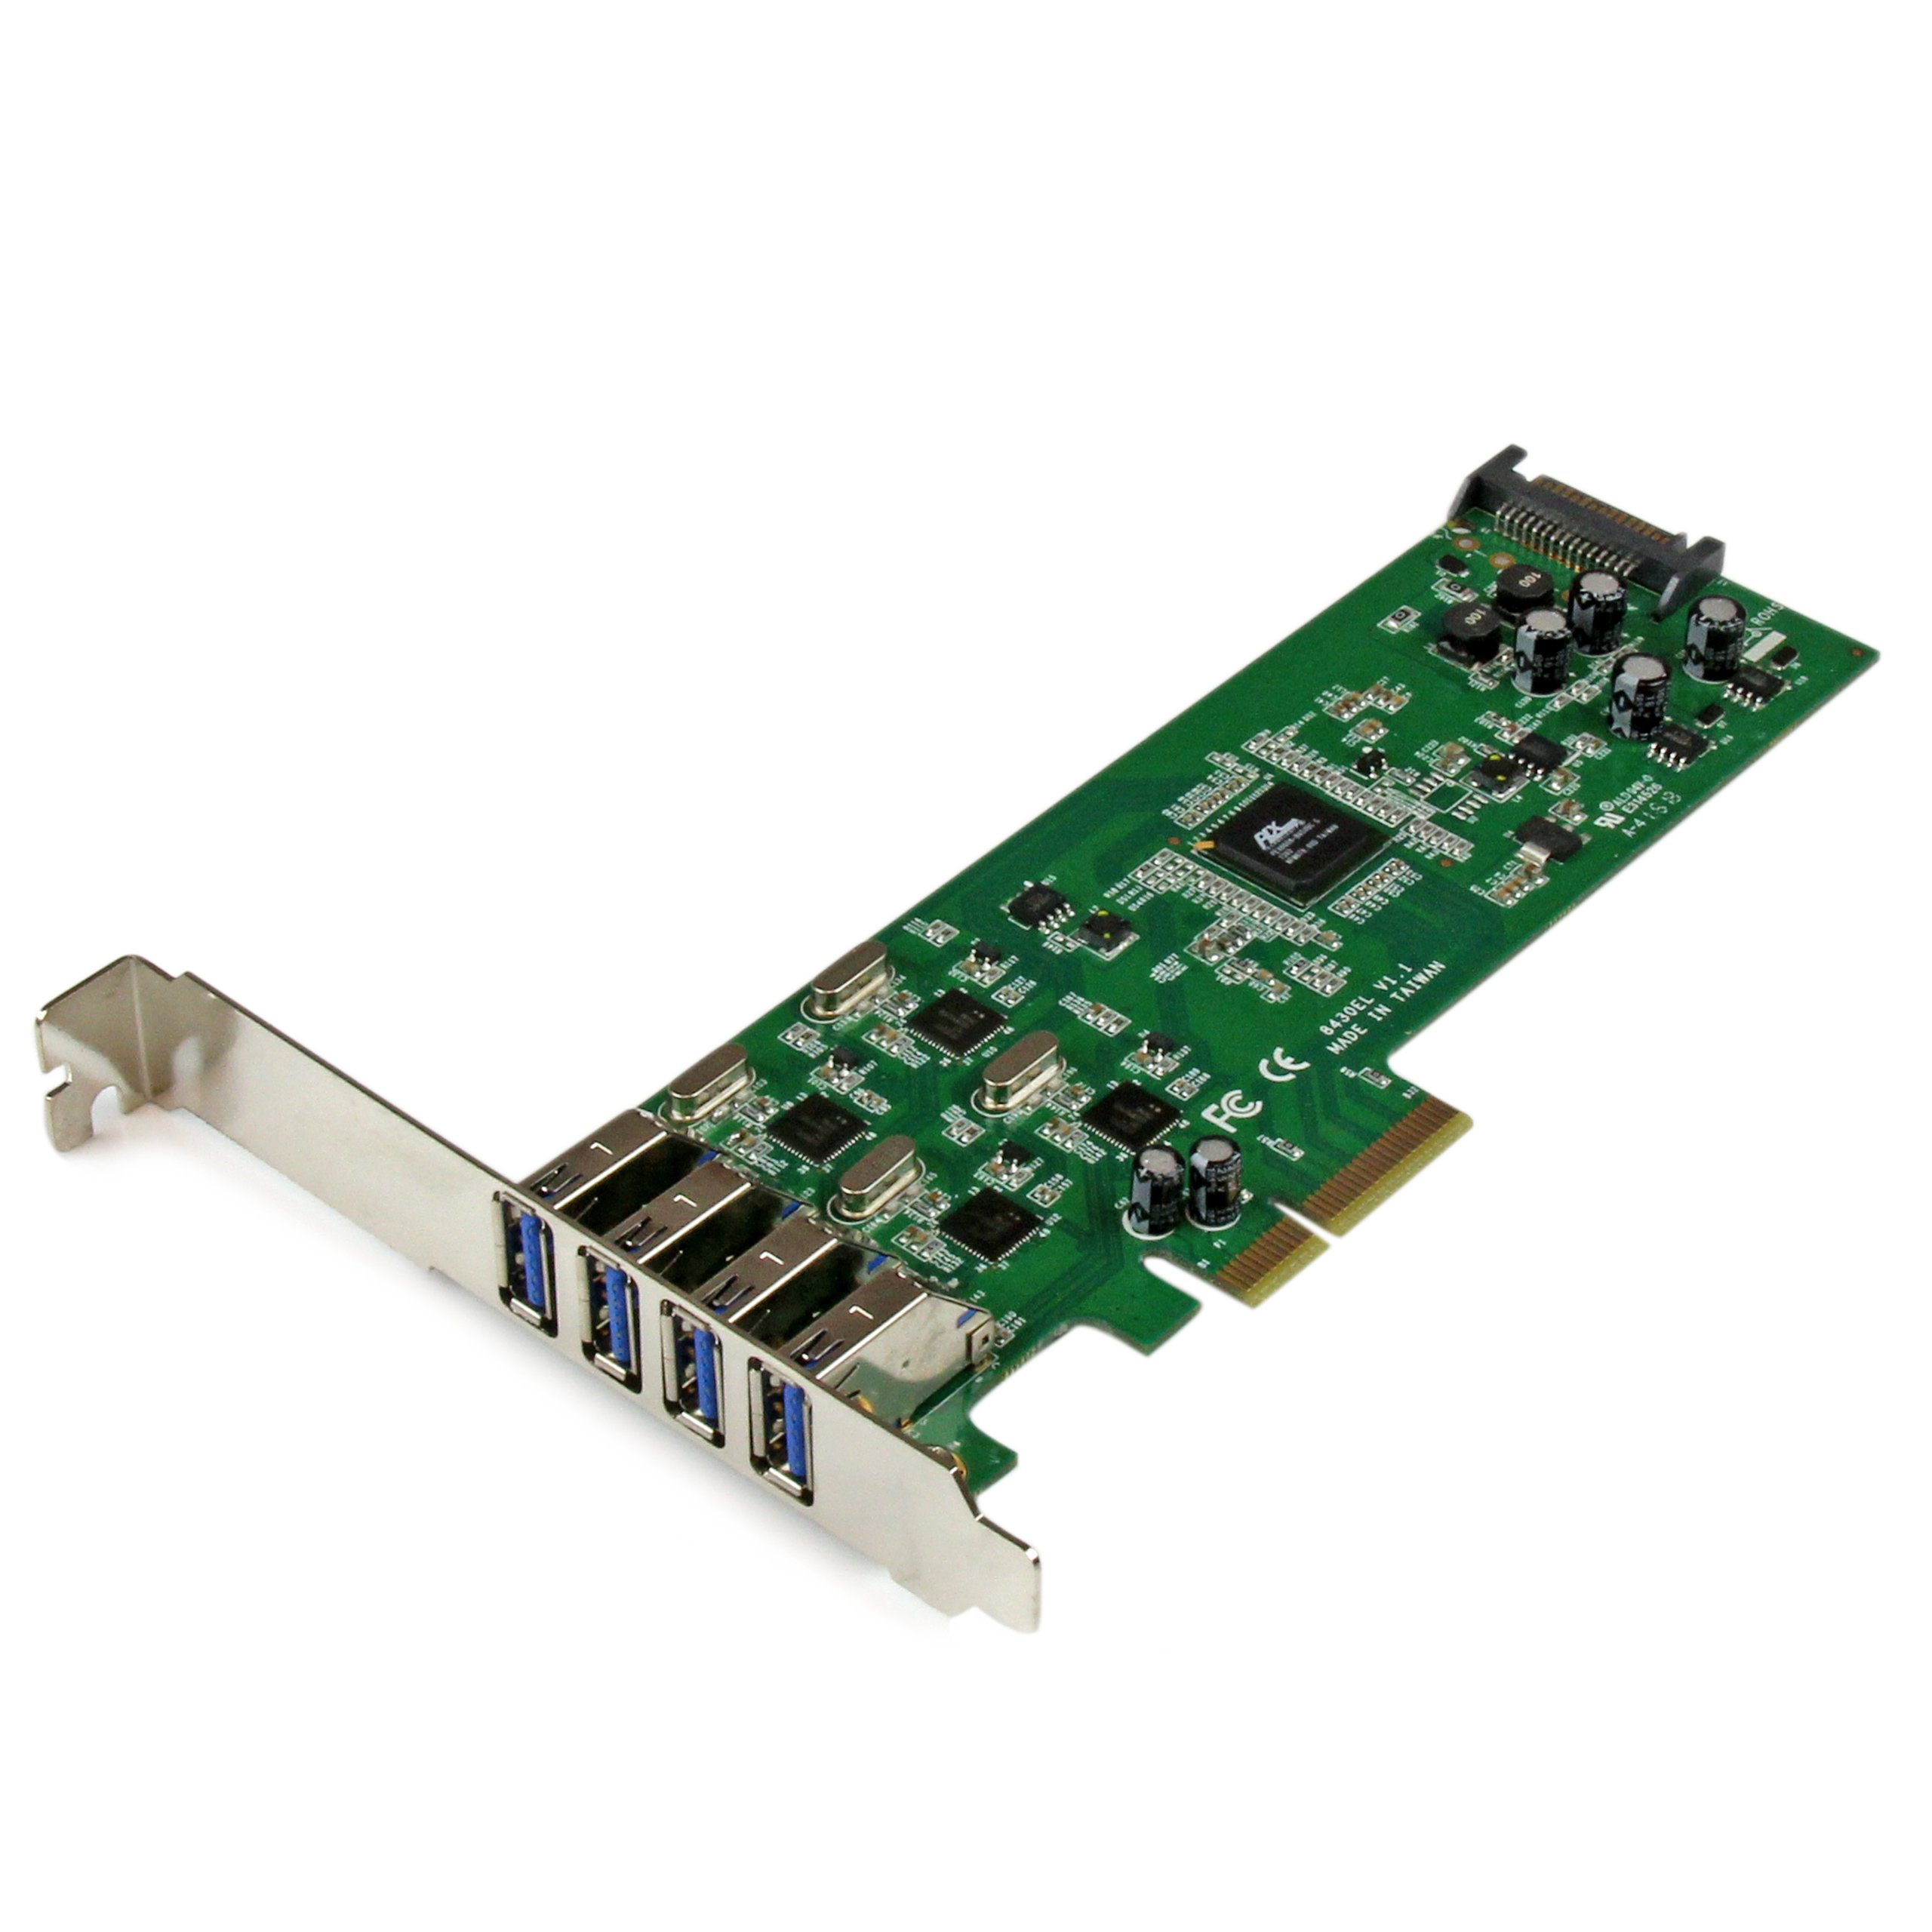 StarTech.com 4 Independent Port PCI Express SuperSpeed USB 3.0 Controller Card Adapter with SATA Power PEXUSB3S400